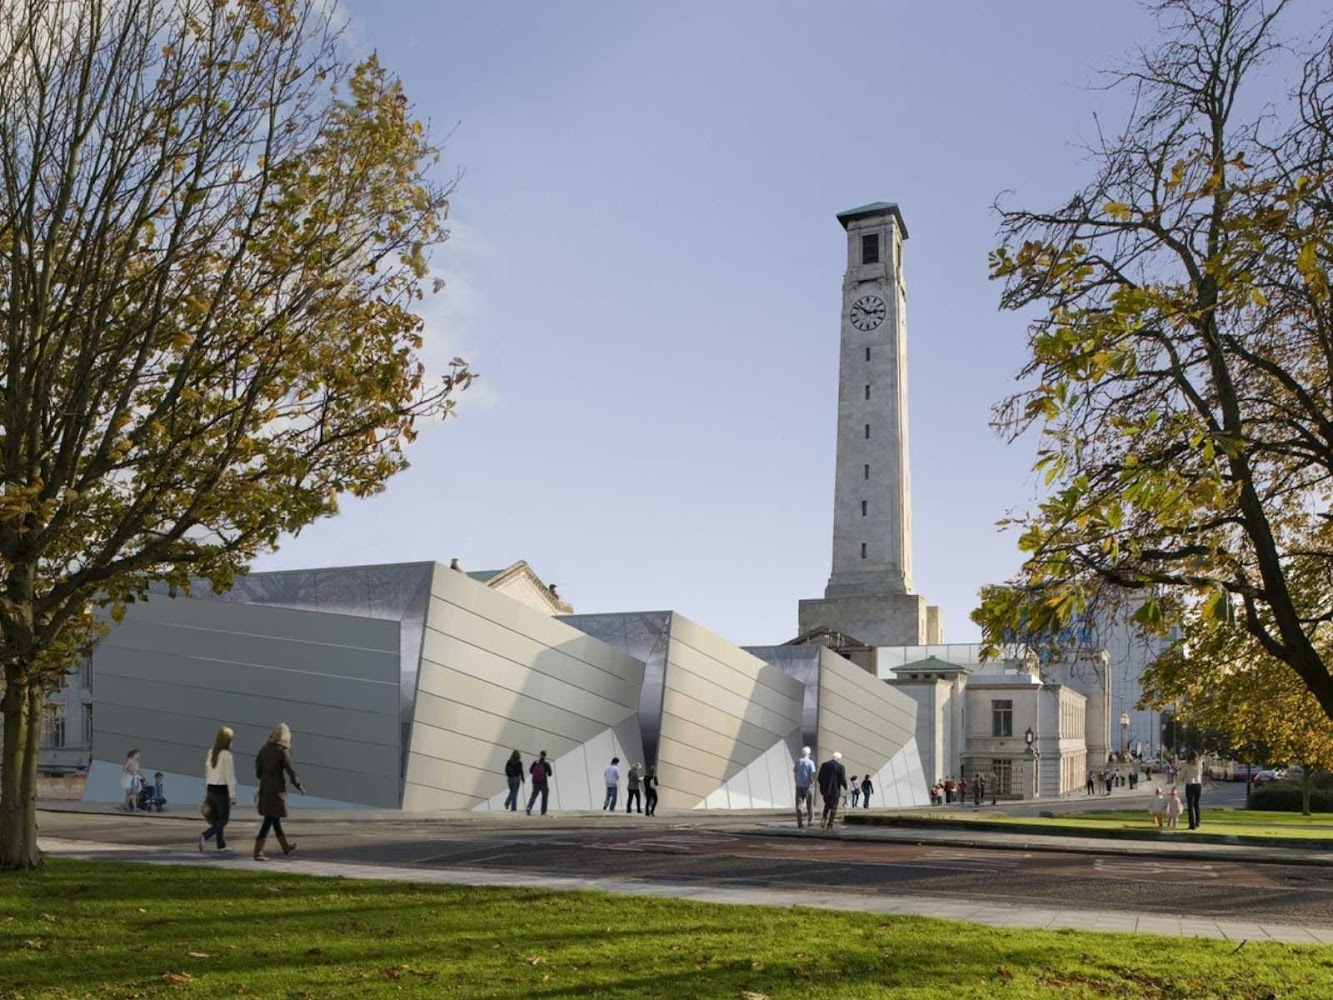 Museum: SEA CITY MUSEUM by WILKINSON EYRE ARCHITECTS